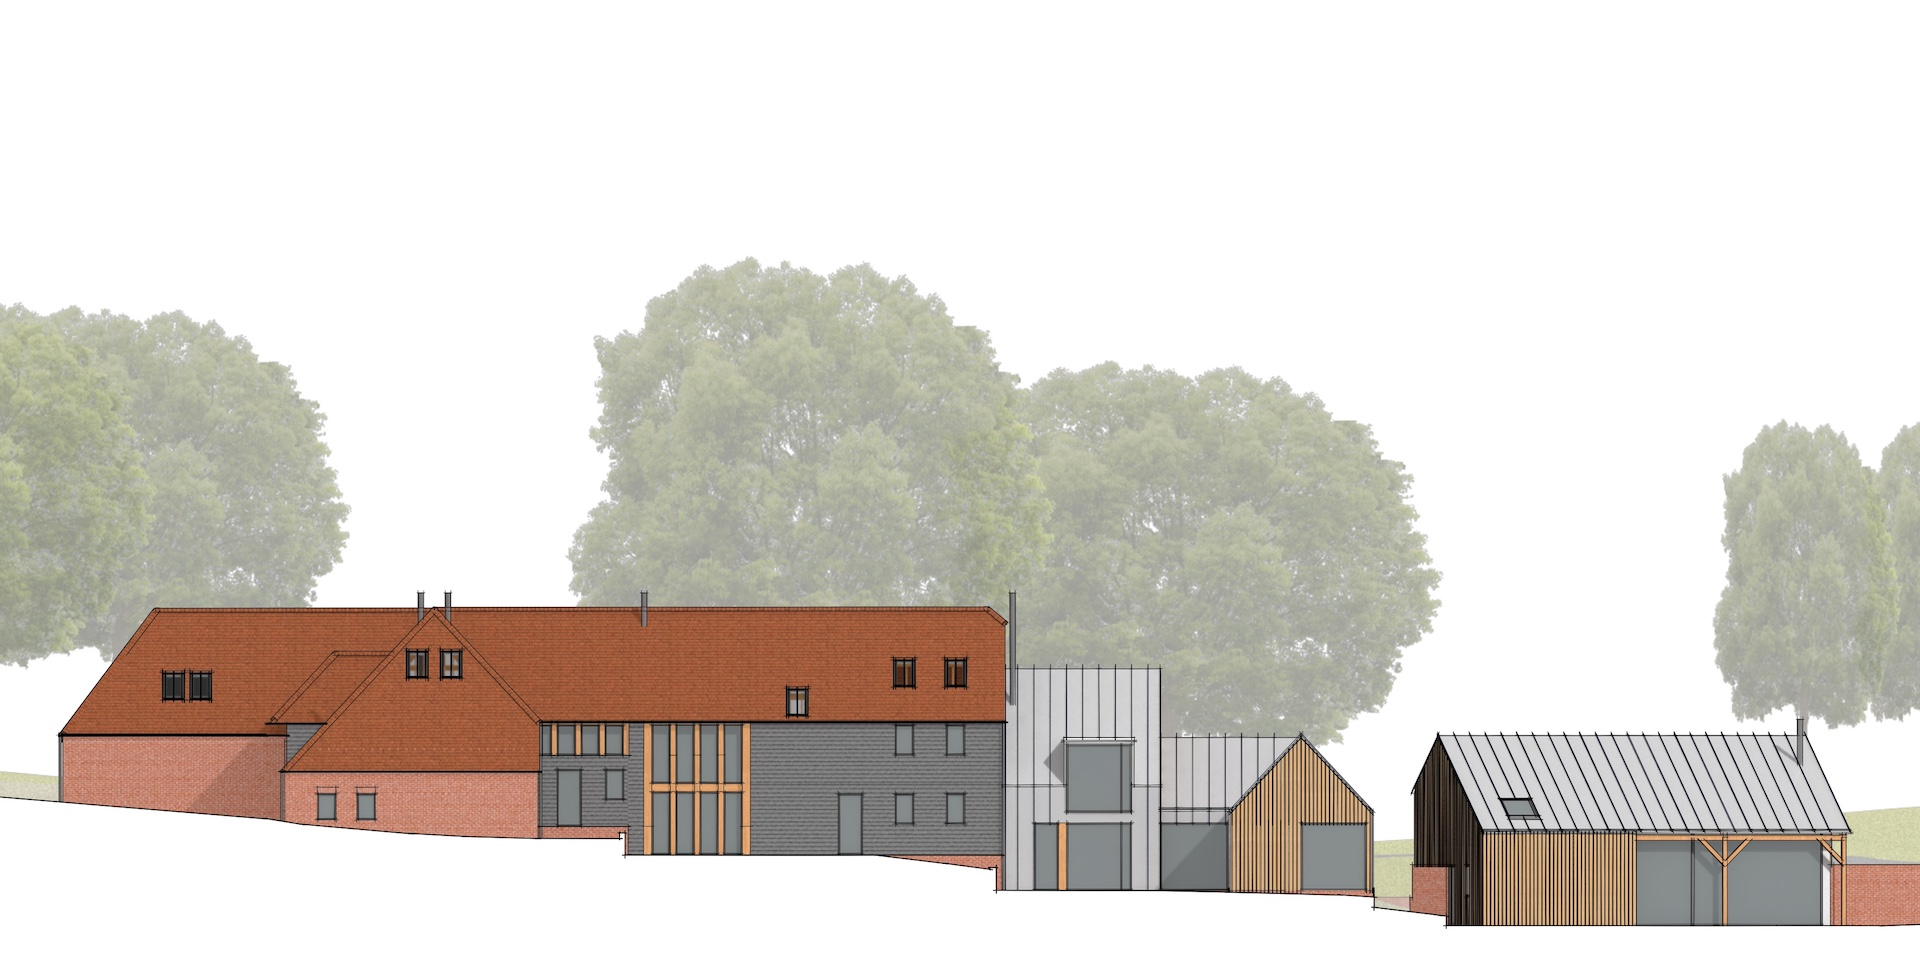 Oxfordshire Barns – Planning Permission Granted